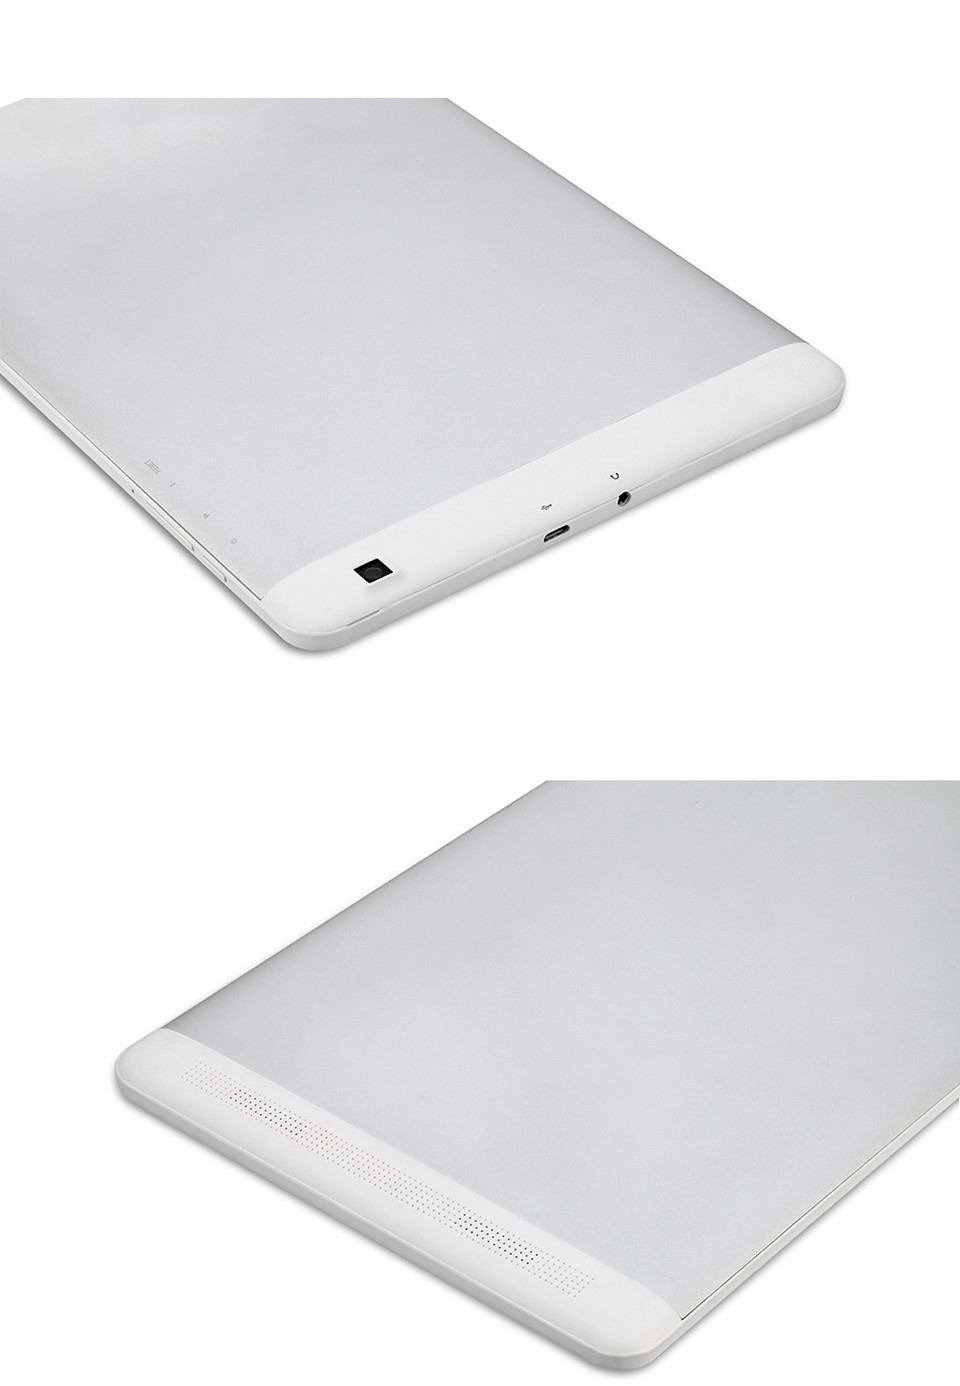 10 inch 3G Calling Tablet PC Aoson M106TG Android 5.1 Silver Tablette Dual Cameras SIM Card Slot Wifi Bluetooth (6)